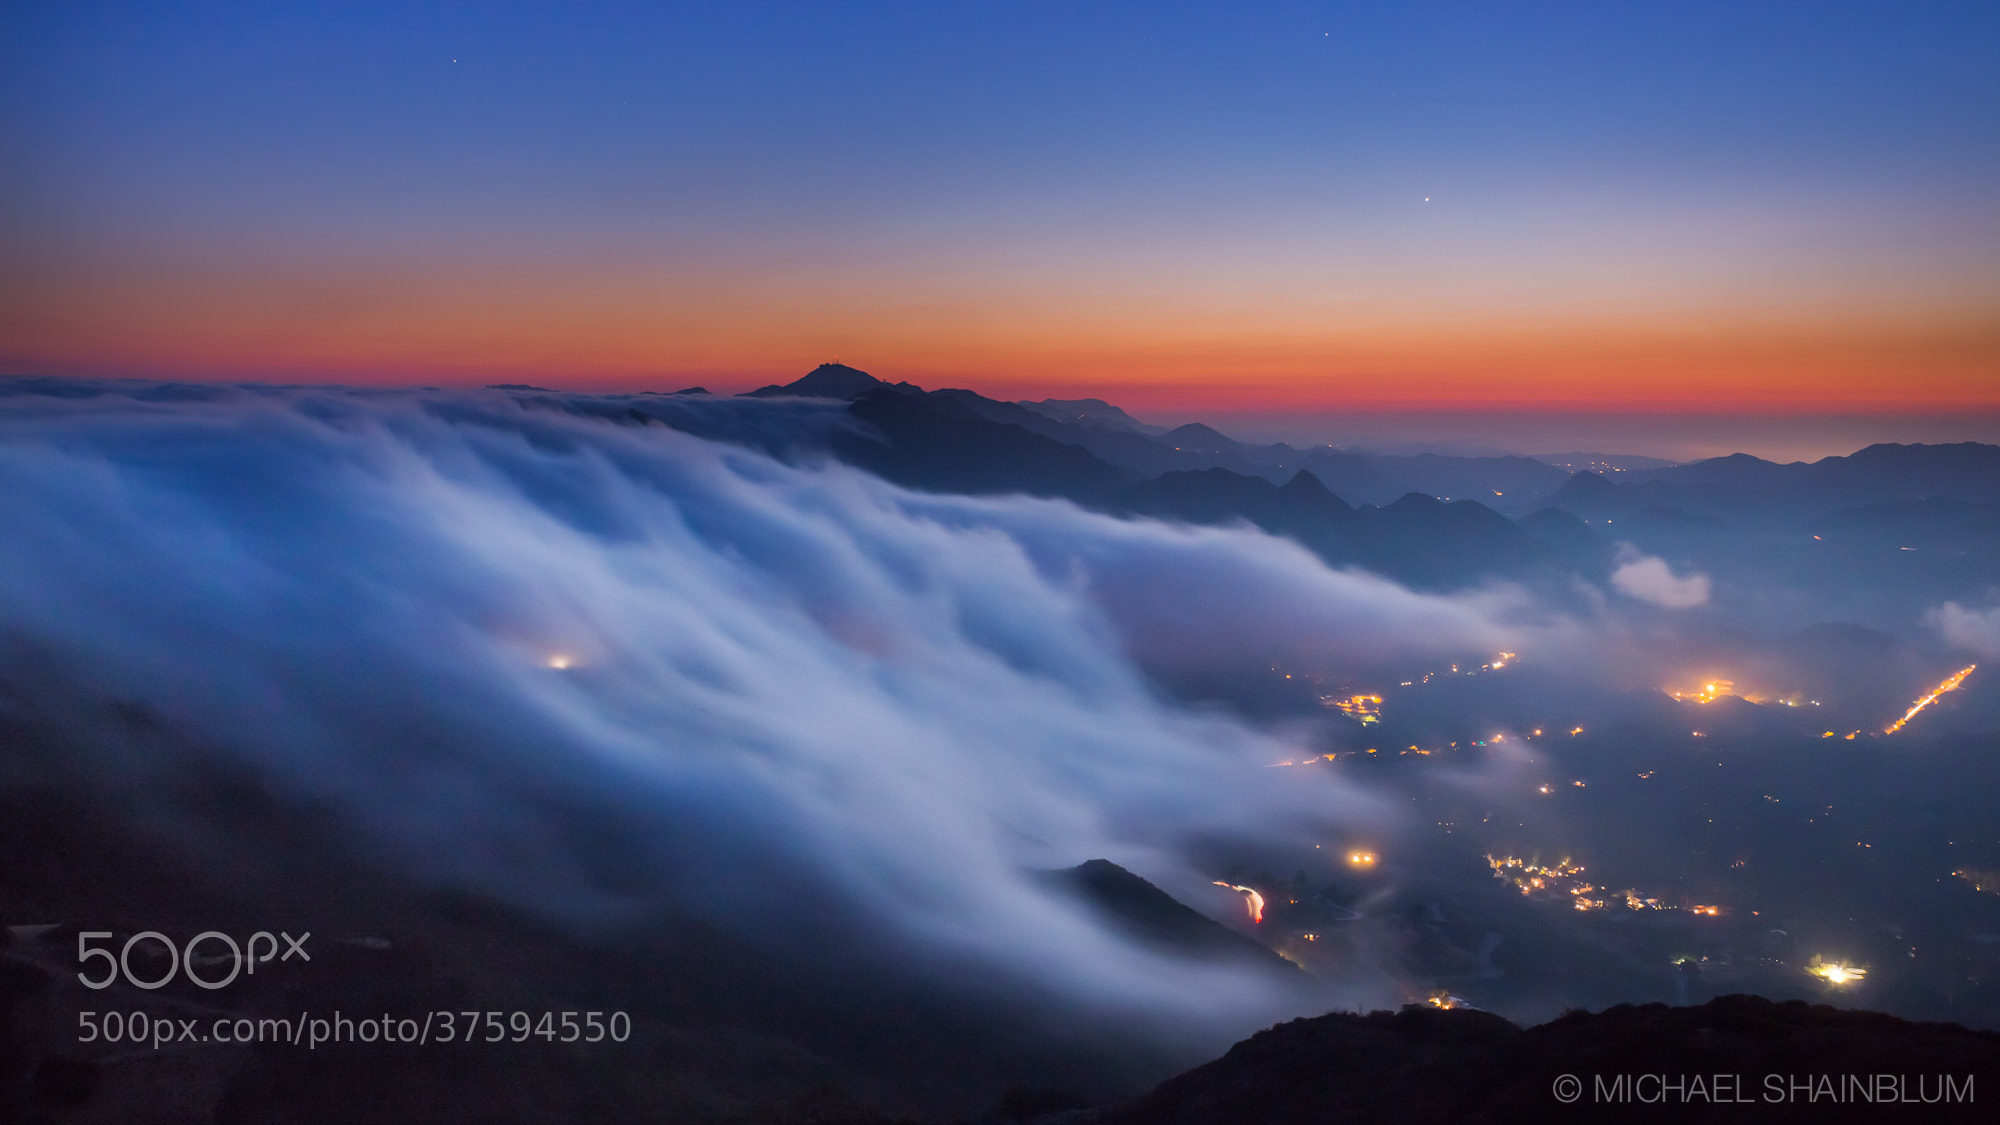 Photograph Cloud Waterfall by Michael Shainblum on 500px